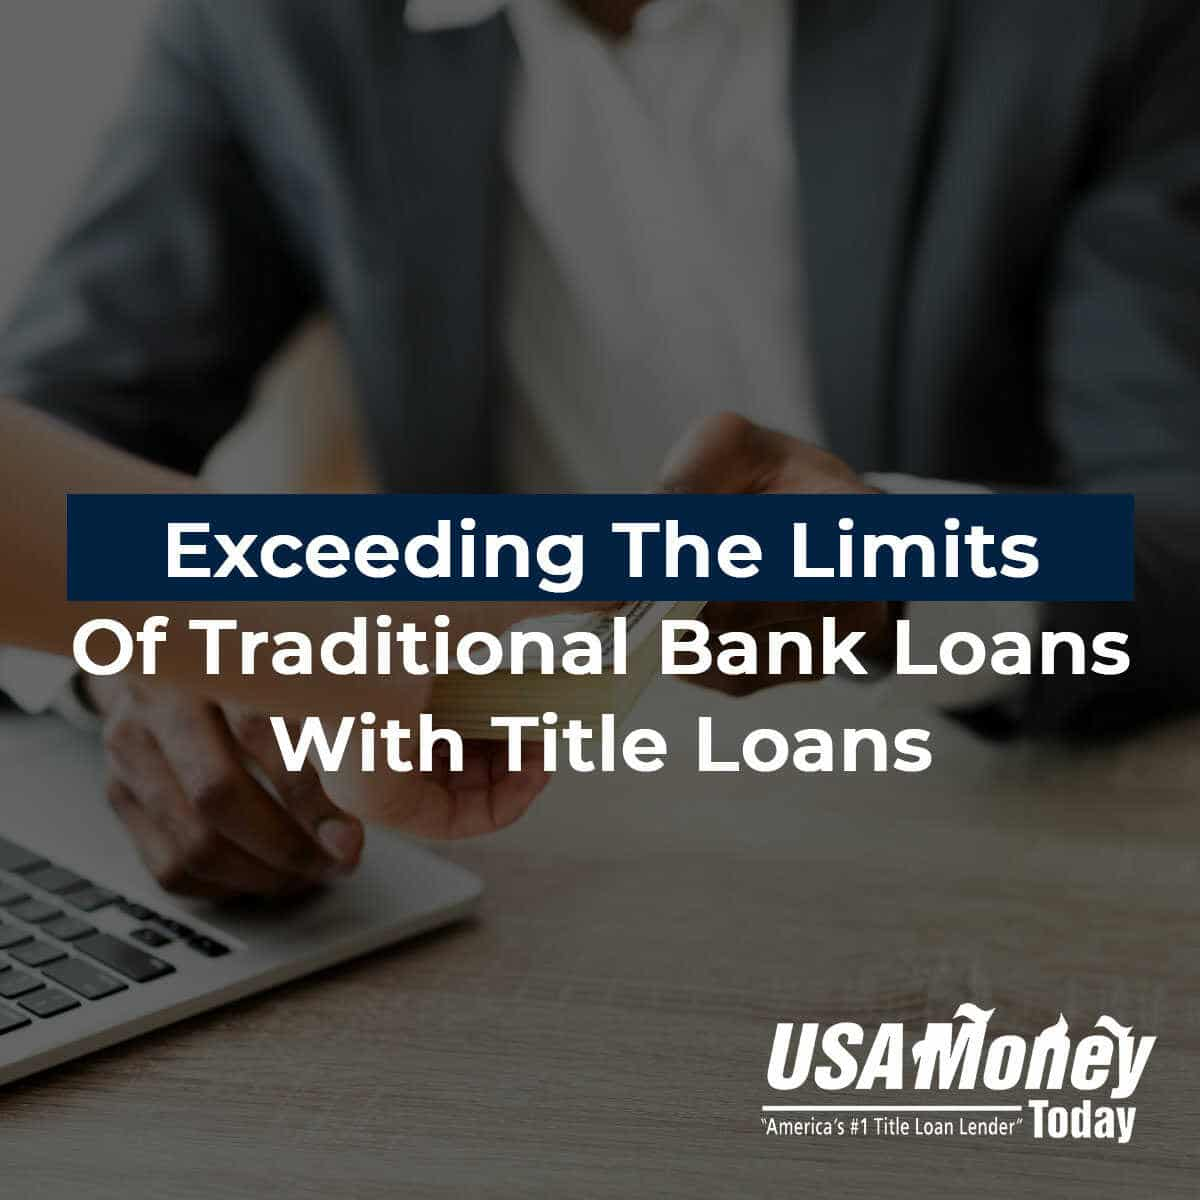 Exceeding The Limits Of Traditional Bank Loans With Title Loans